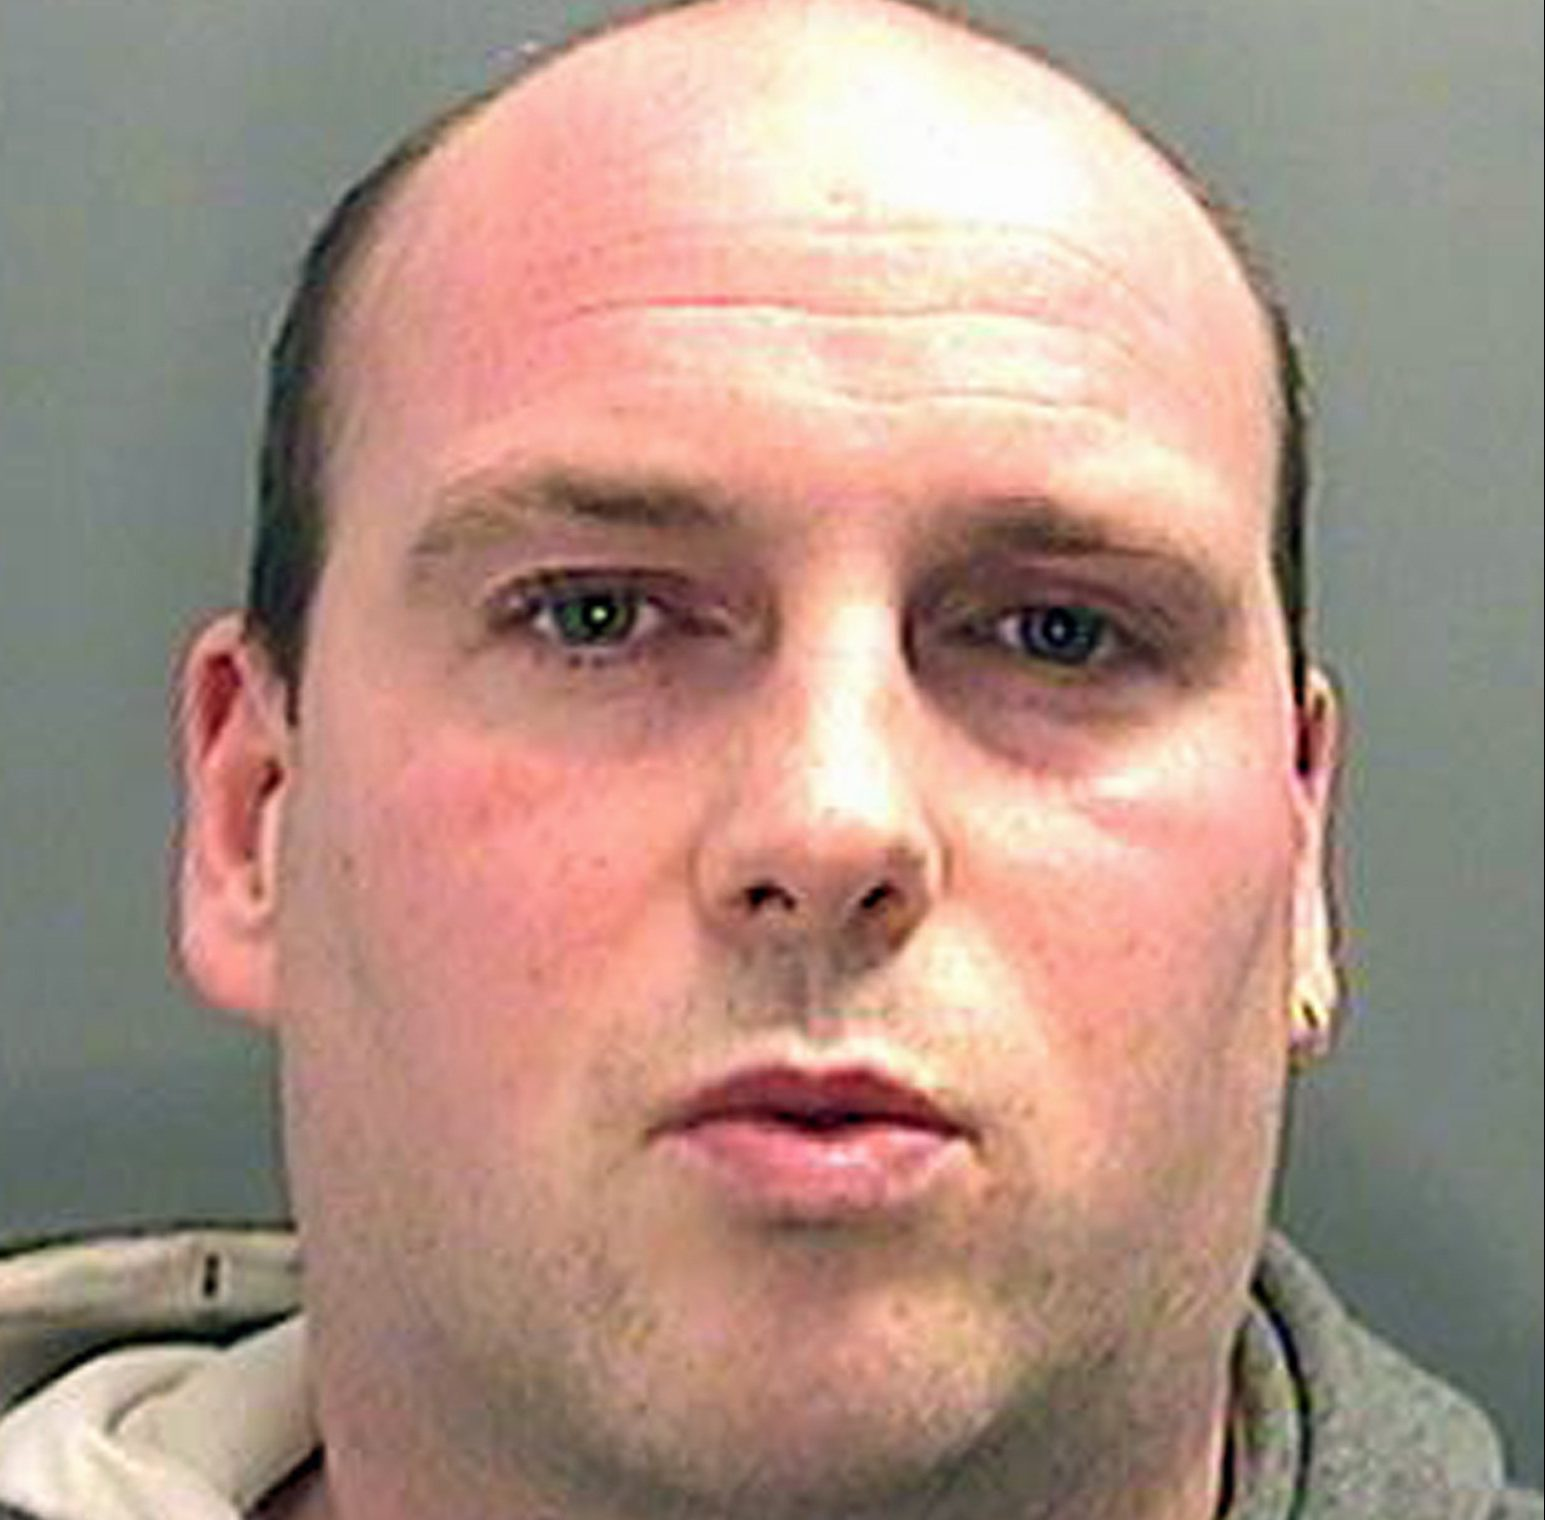 BEST QUALITY AVAILABLE Undated handout photo issued by South Wales Police of Jonathan Drakeford, who has been jailed for raping a woman at a property in Cardiff. PRESS ASSOCIATION Photo. Issue date: Friday September 21, 2018. Drakeford, 31, son of Welsh Labour leadership front-runner Mark Drakeford, was found guilty of rape and assault occasioning actual bodily harm following a trial earlier this week. See PA story COURTS Drakeford. Photo credit should read: South Wales Police/PA Wire NOTE TO EDITORS: This handout photo may only be used in for editorial reporting purposes for the contemporaneous illustration of events, things or the people in the image or facts mentioned in the caption. Reuse of the picture may require further permission from the copyright holder.